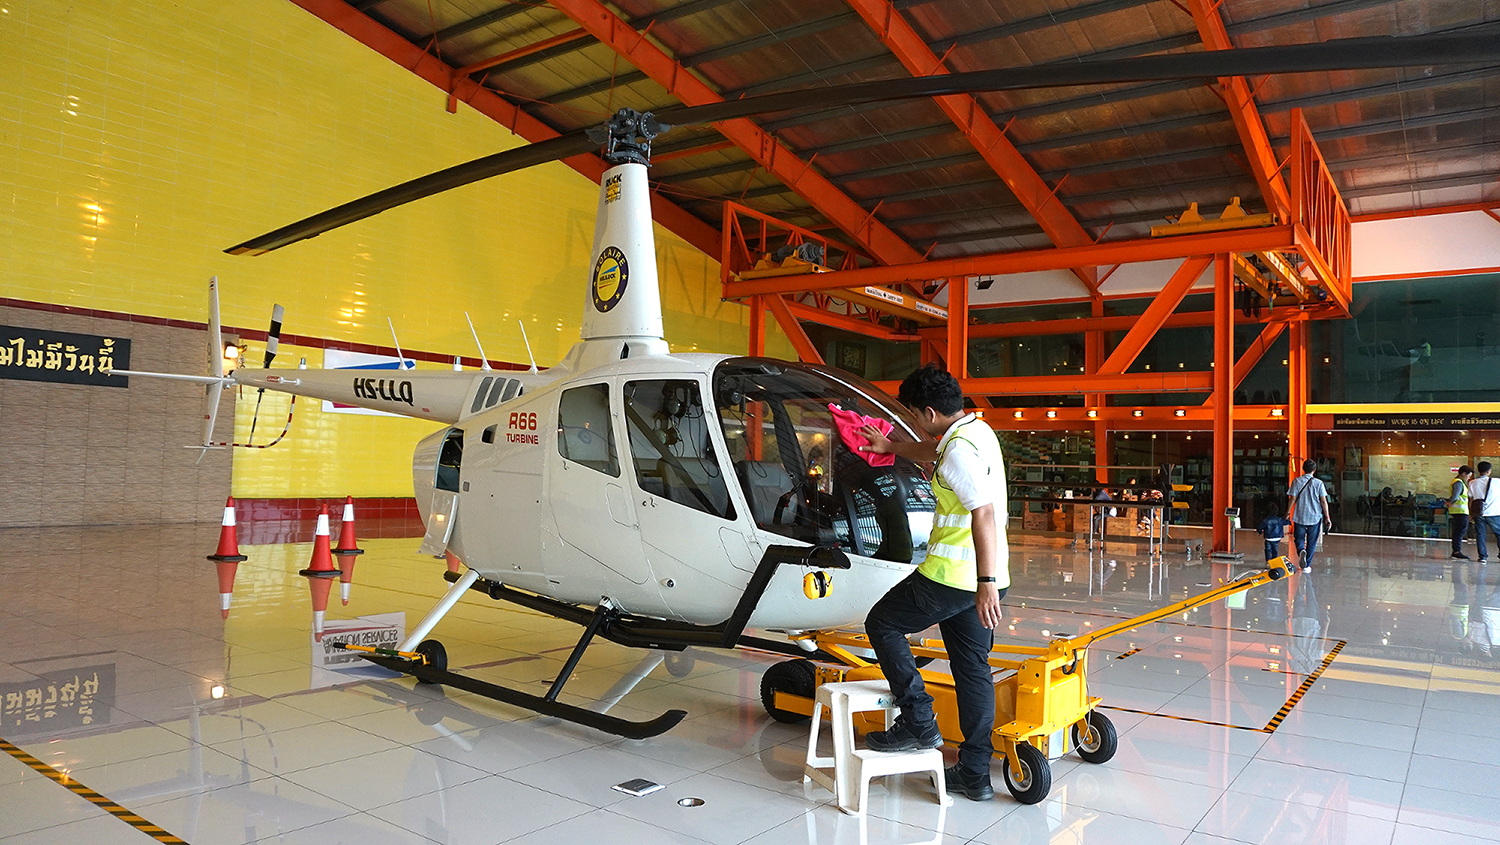 Helicopter Sightseeing Bangkok Thailand Solaire Heliluck Aviation Services 15